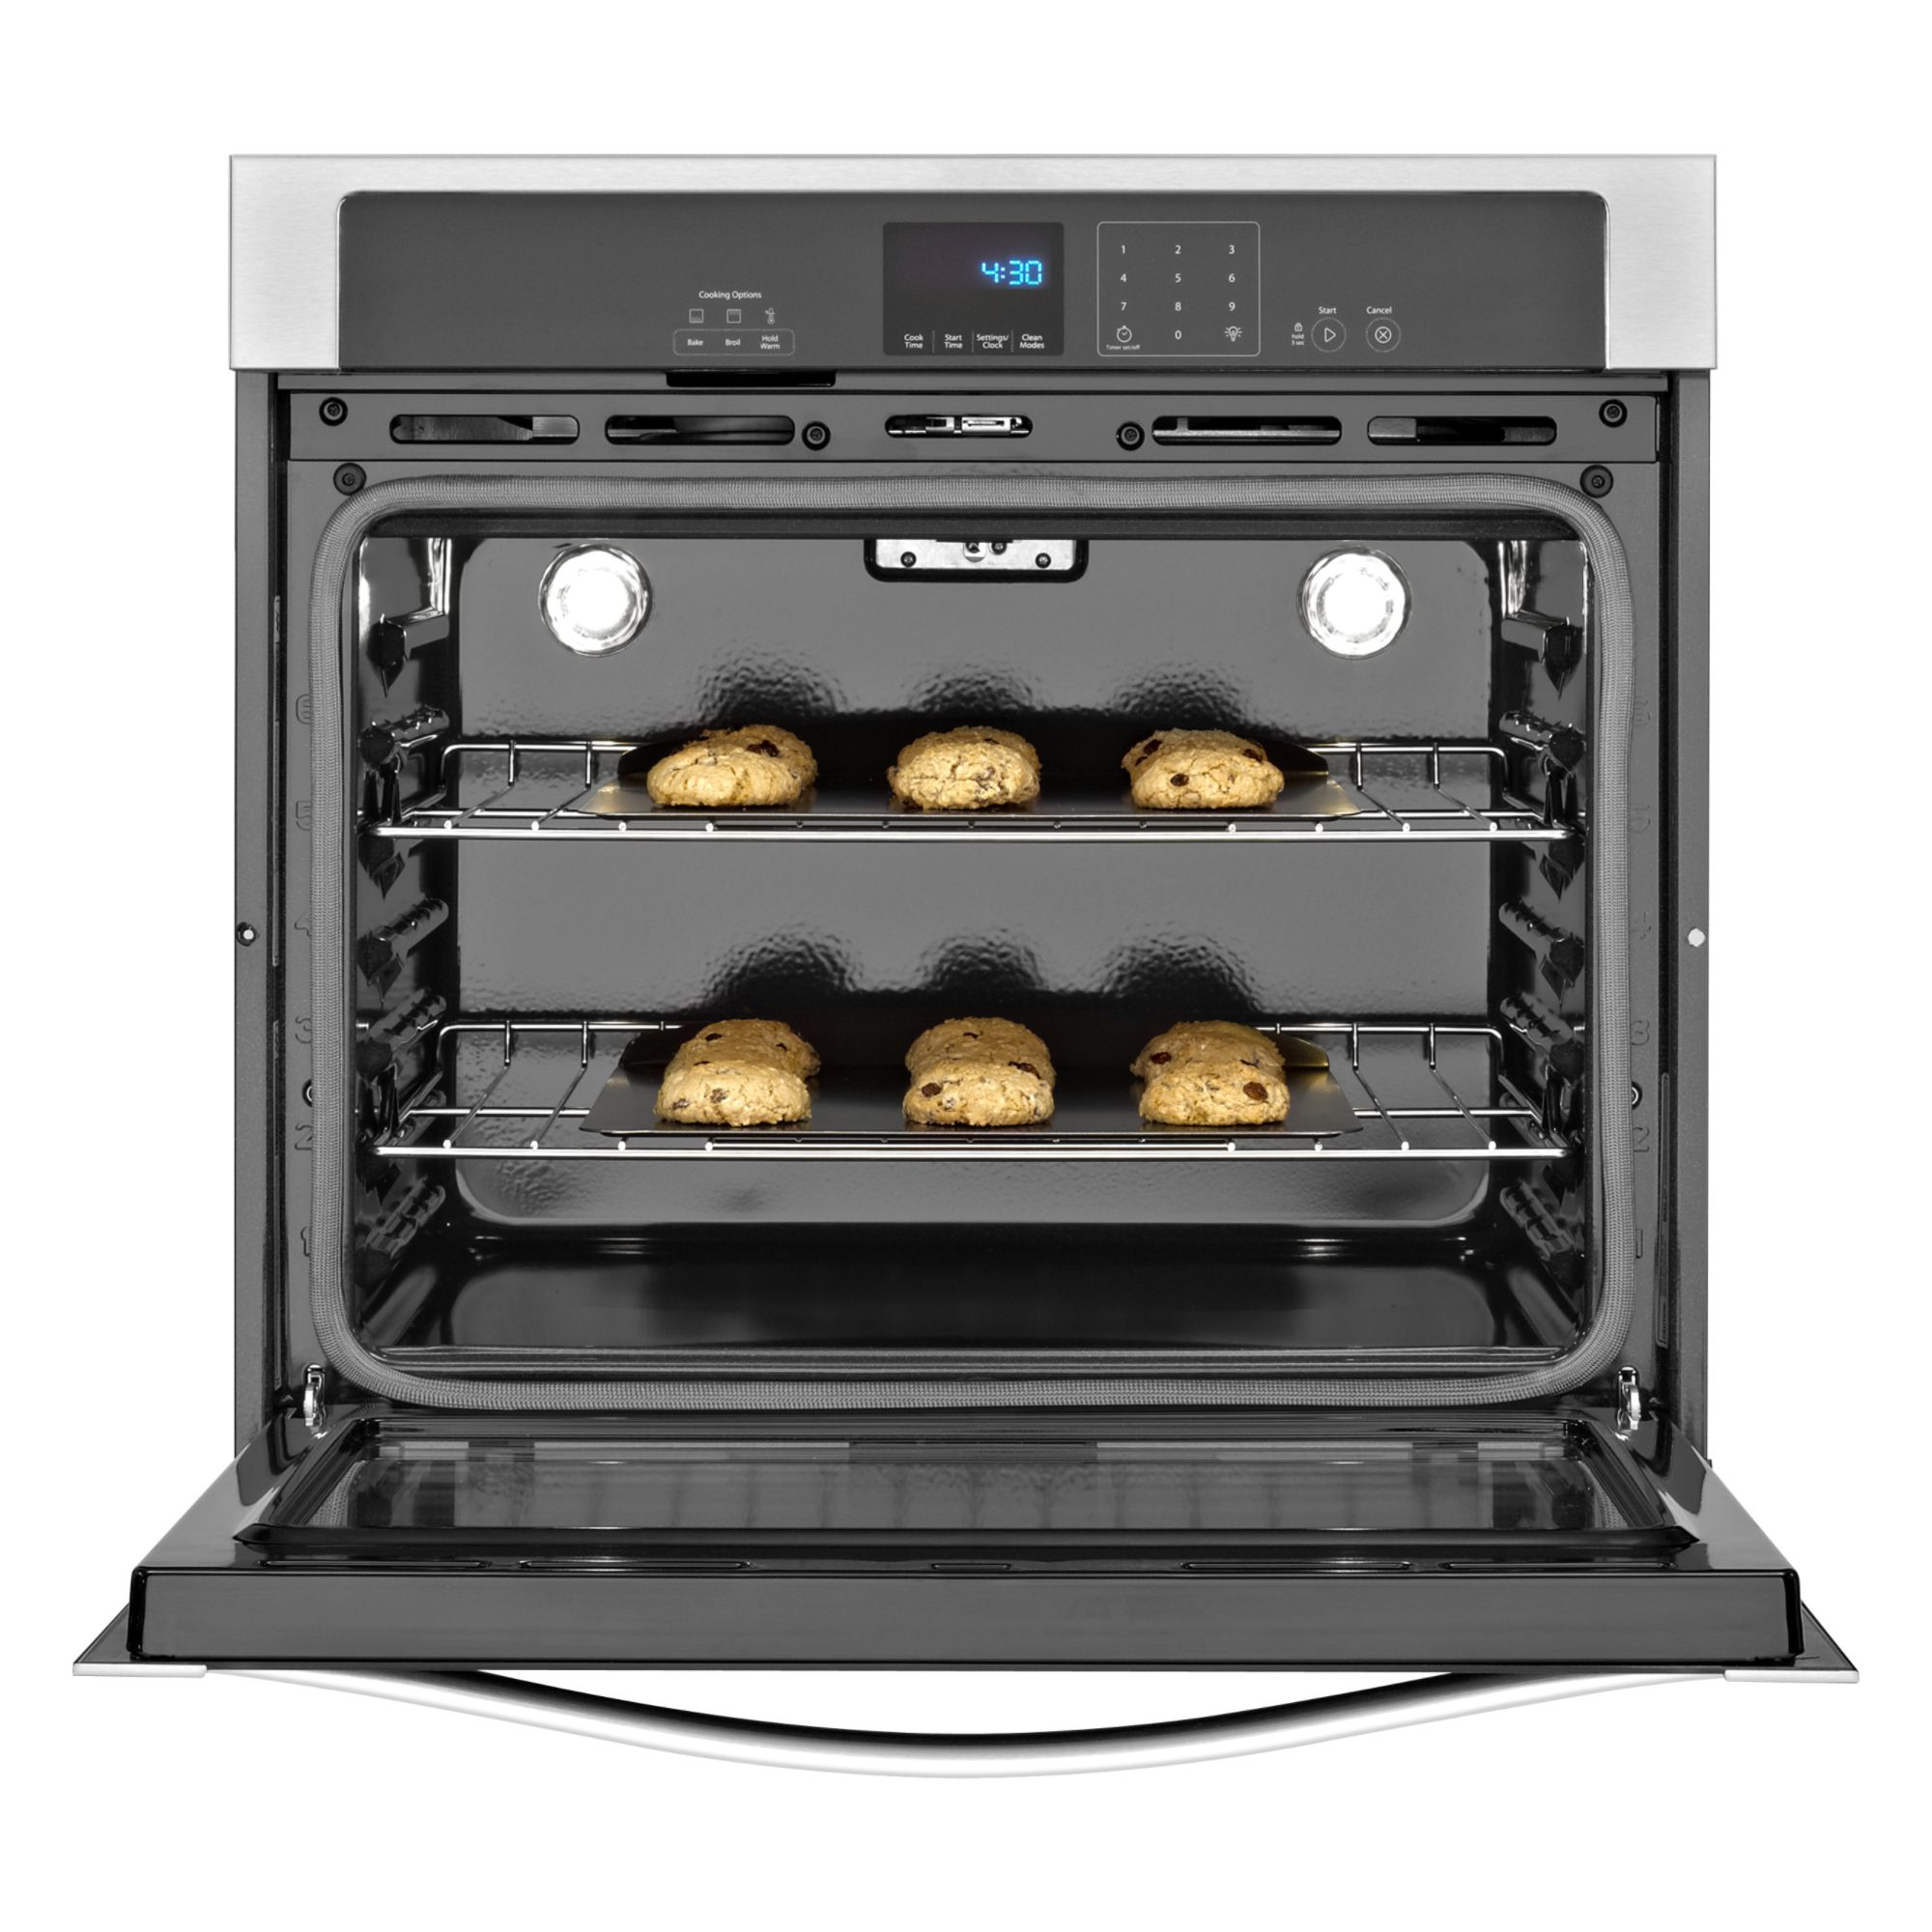 """Whirlpool 30"""" Electric Wall Oven w/ SteamClean Option - Stainless Steel"""